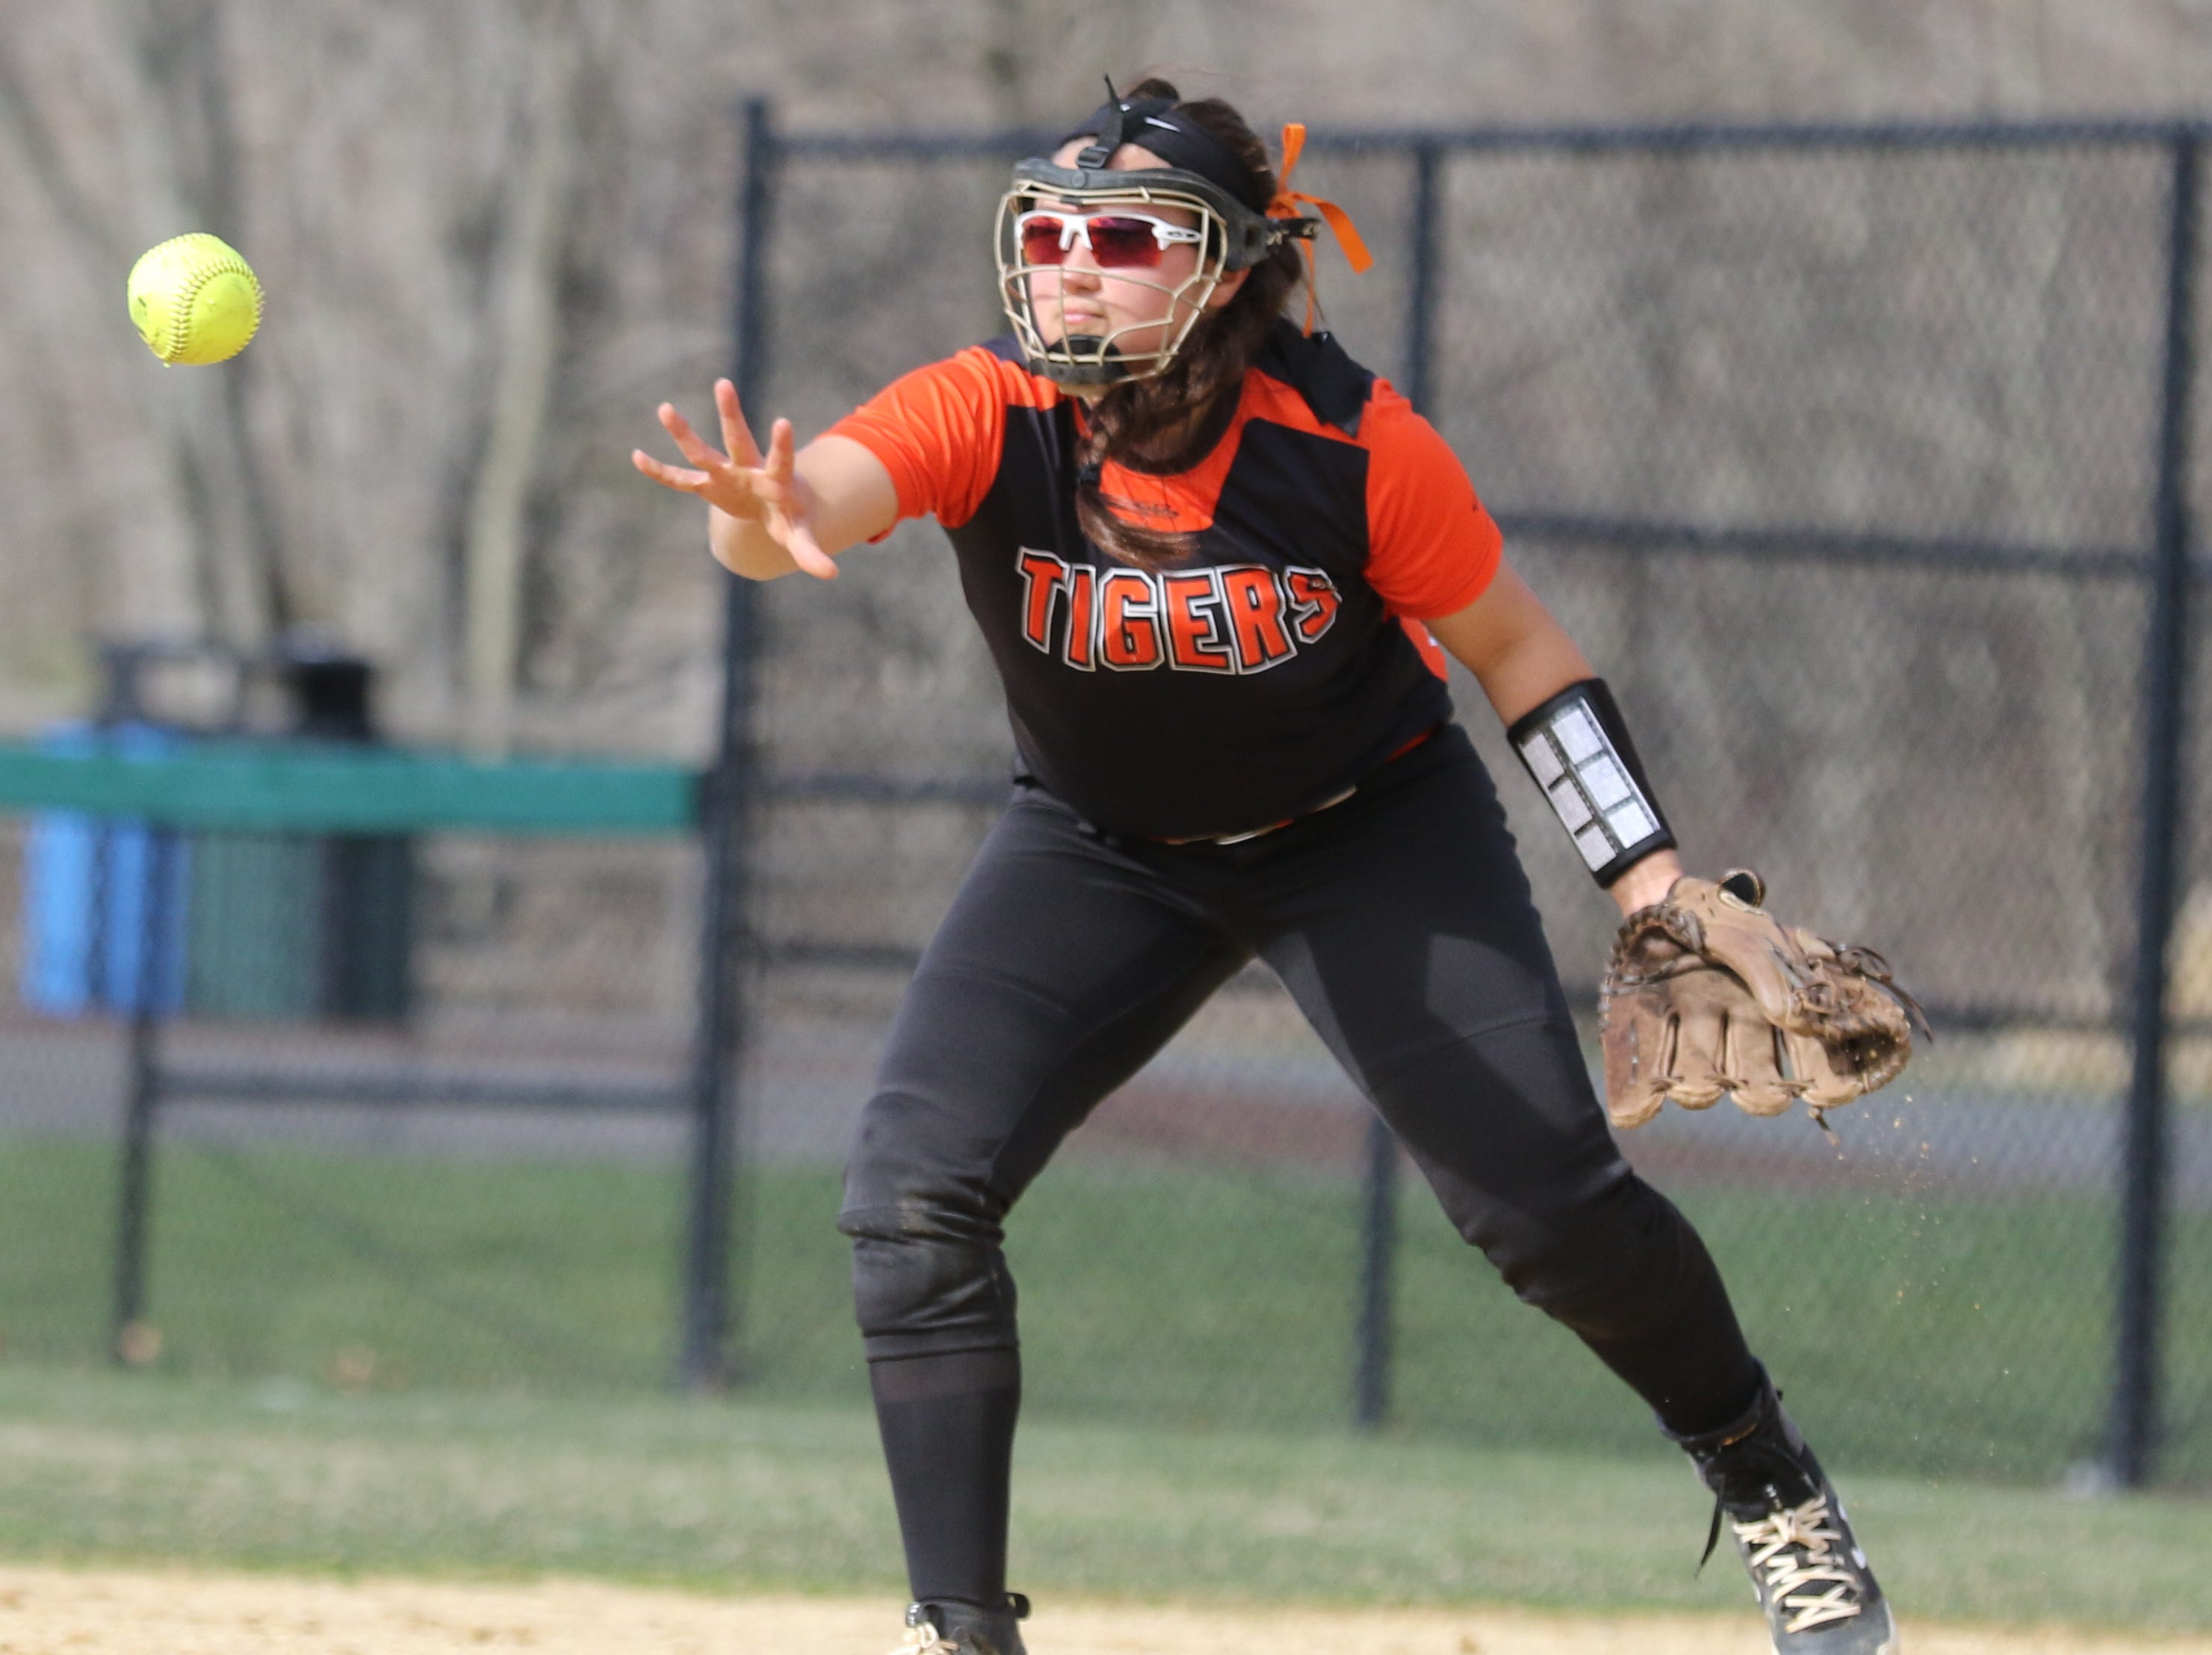 Hackettstown second baseman Lena Lutcza makes a play to get the out at second.